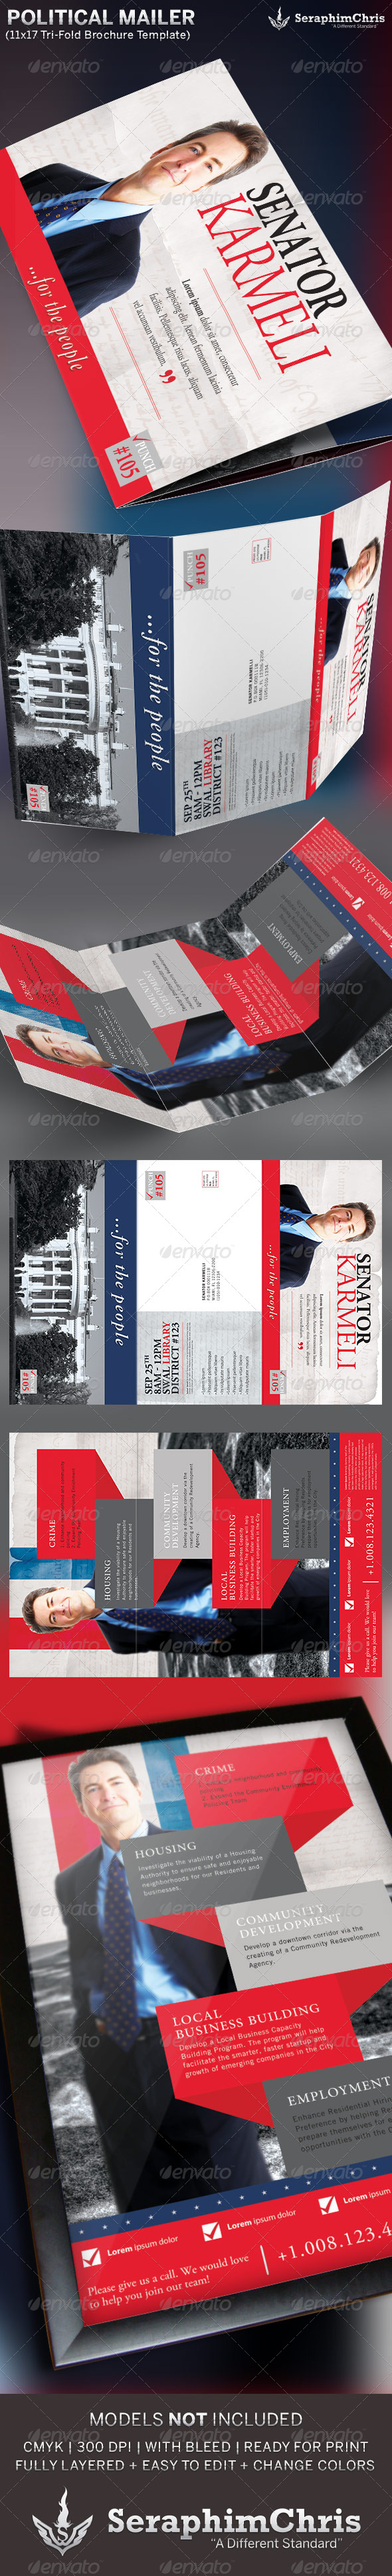 GraphicRiver Large Political Tri-Fold Brochure Mailer Template 5424541